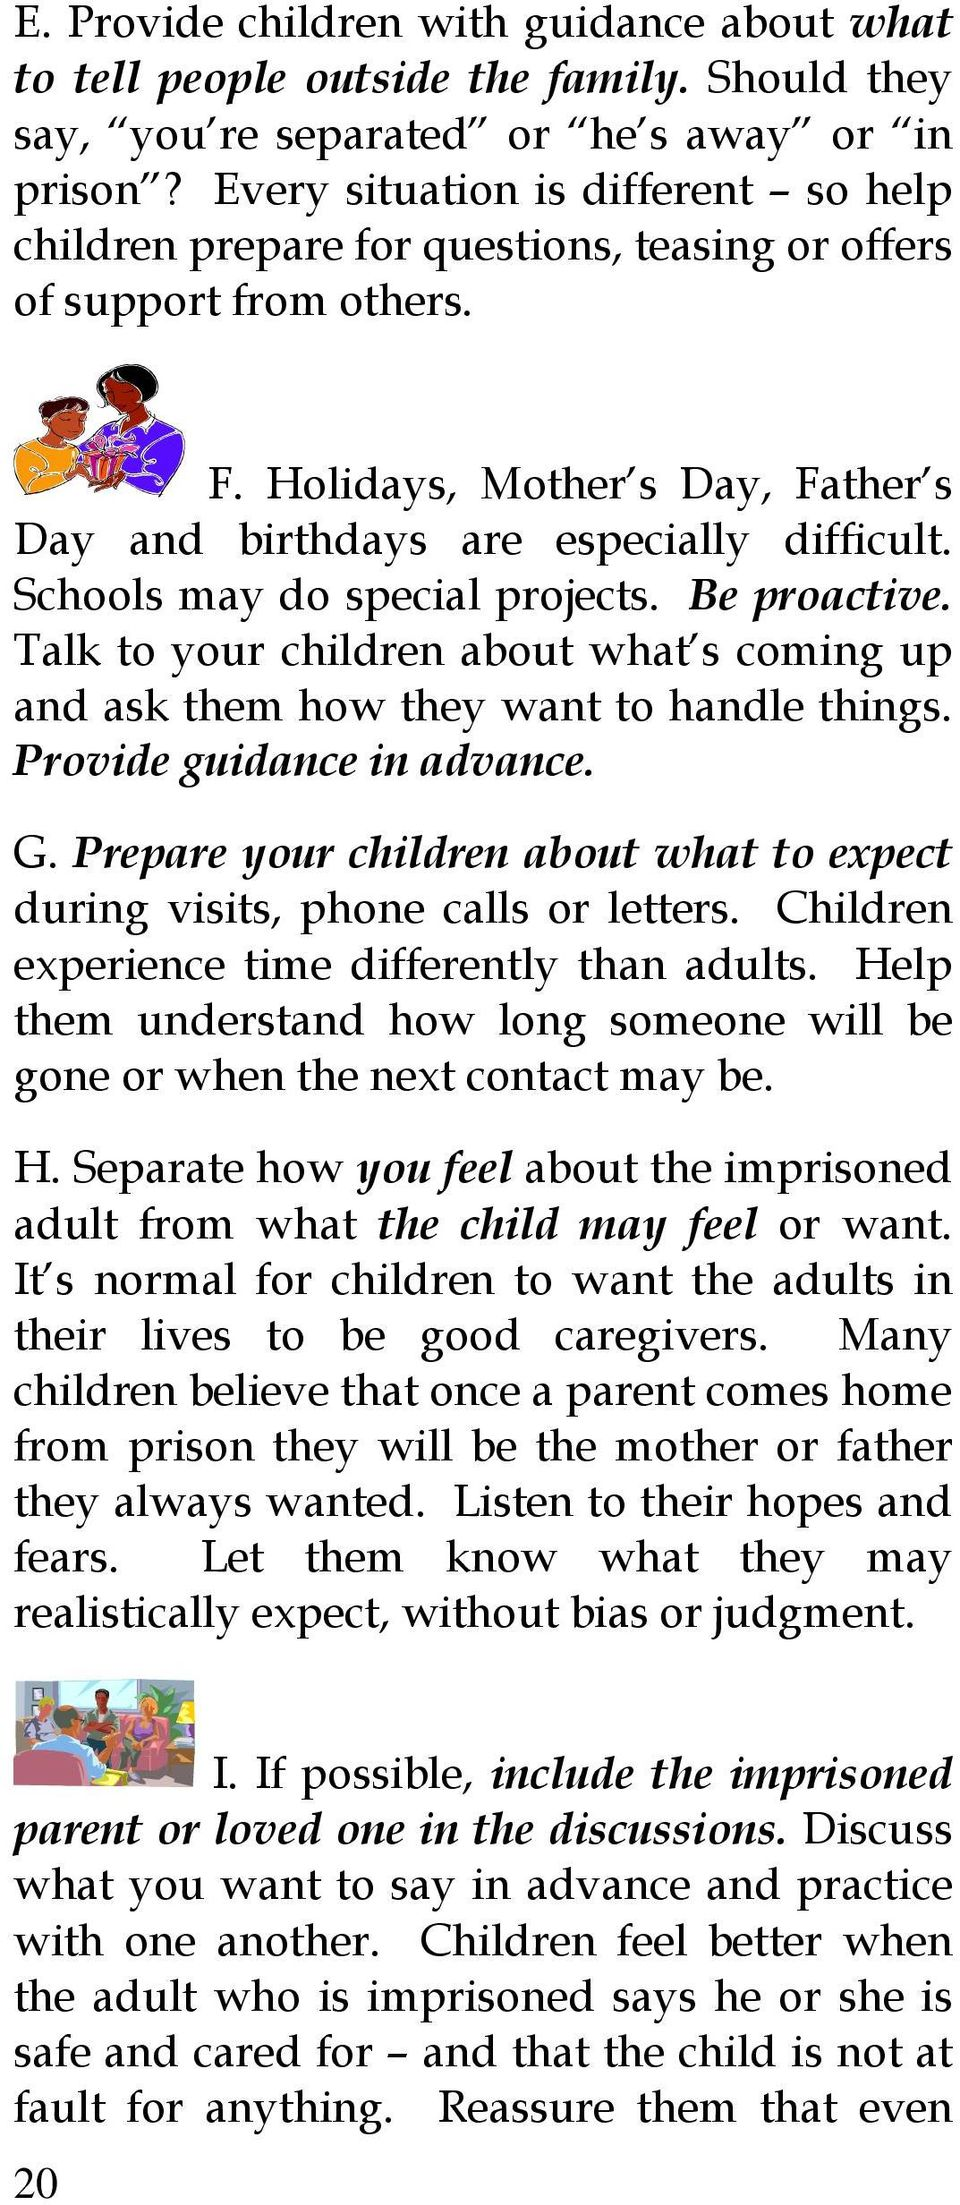 Schools may do special projects. Be proactive. Talk to your children about what s coming up and ask them how they want to handle things. Provide guidance in advance. G.